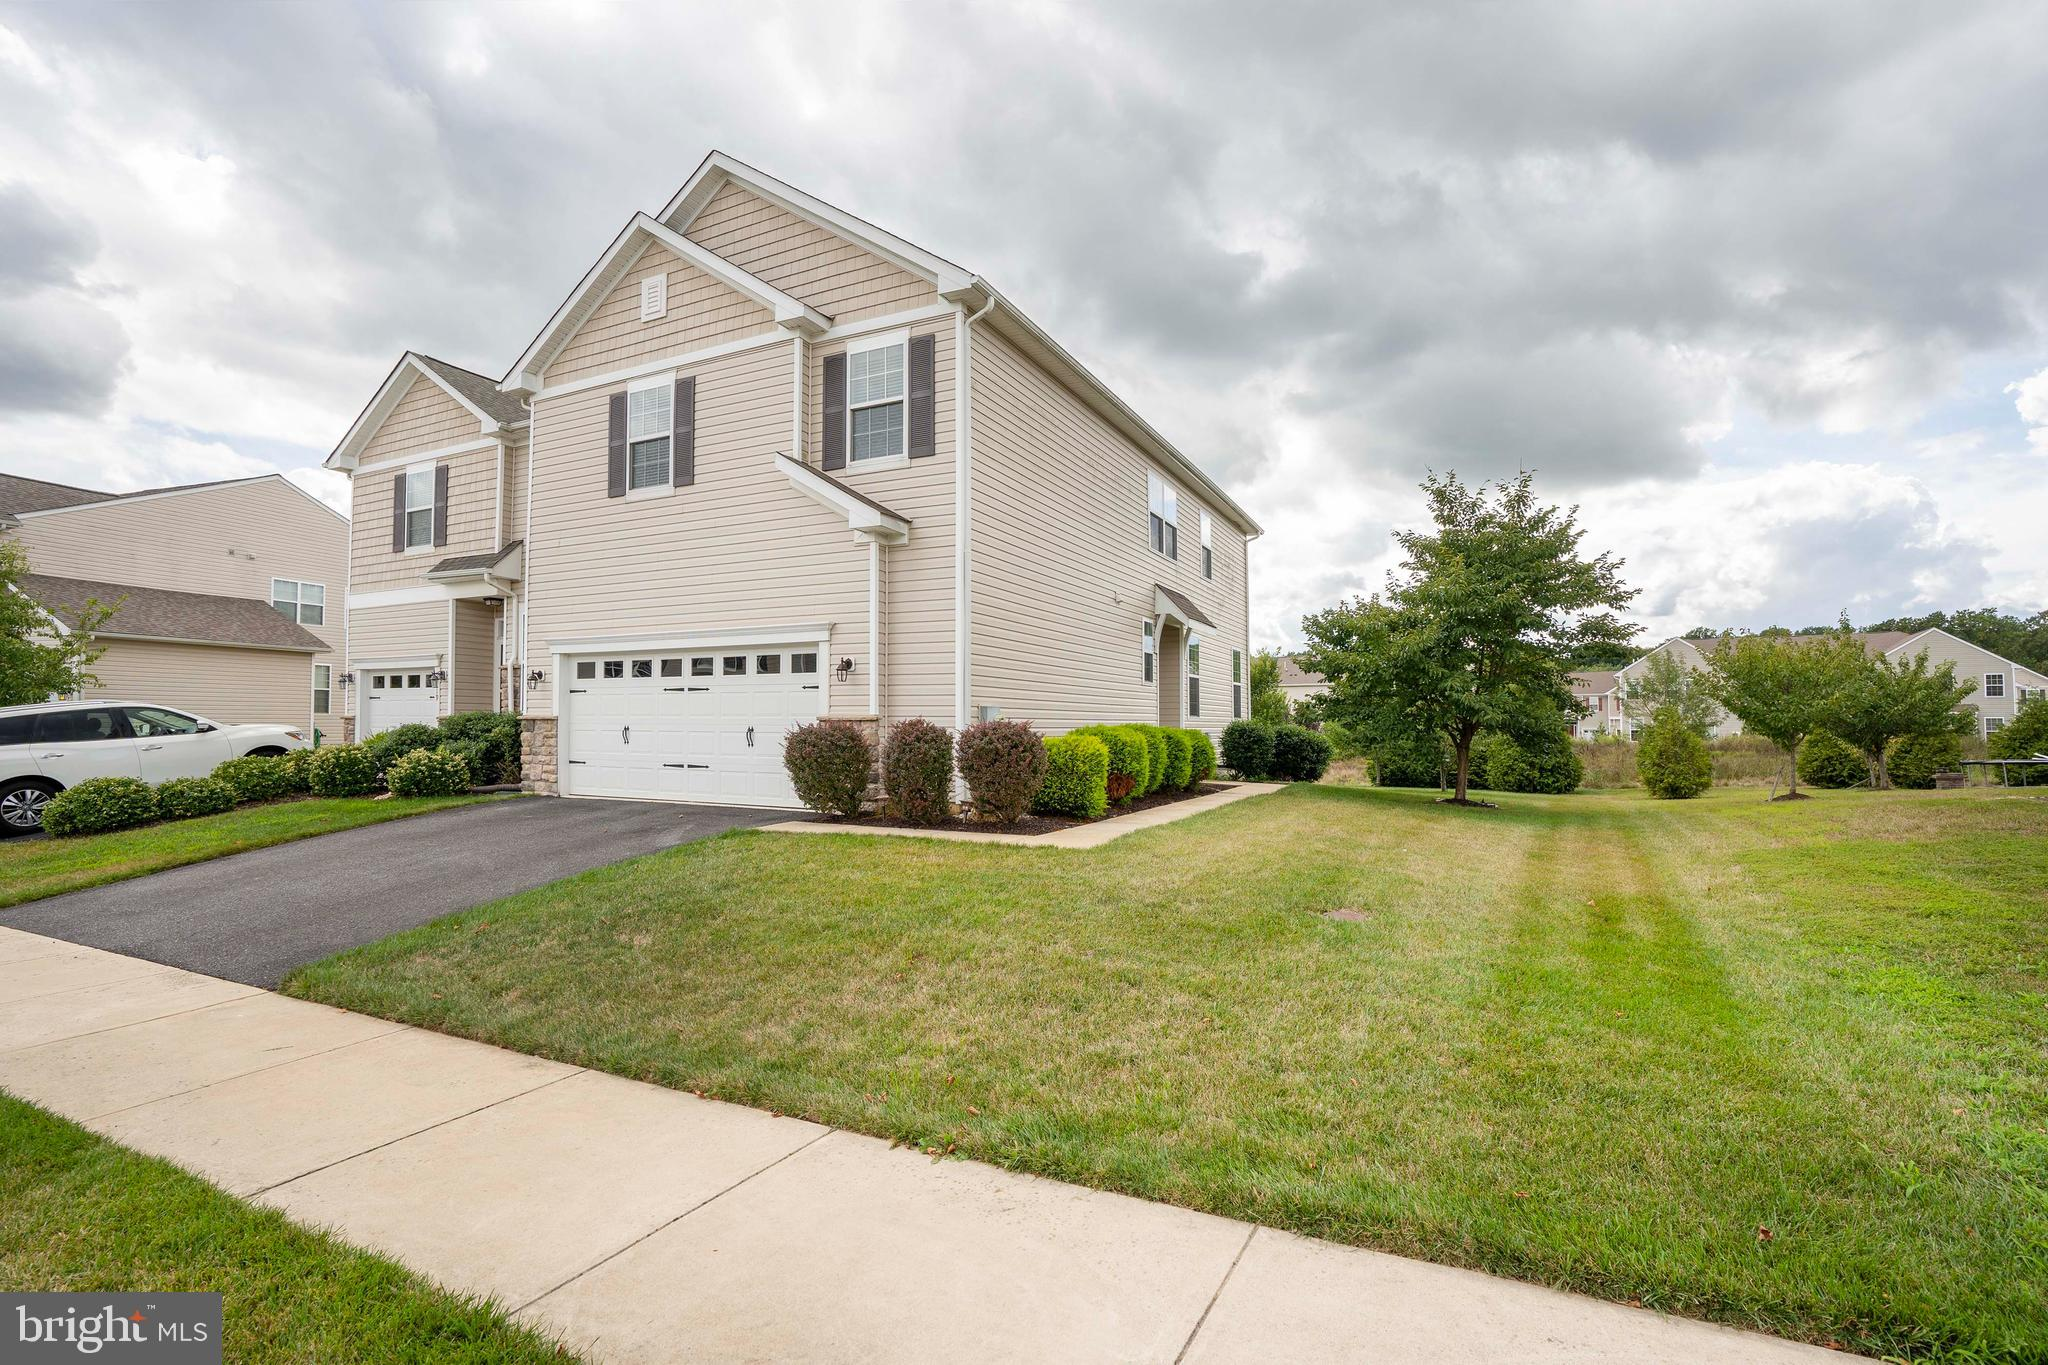 Awaiting Signatures  **Highest and Best Offers Due 8/23 at 8pm** Welcome to 121 Margaretta Drive, located within the Desirable Community of Canal View! Conveniently Located Just off of Routes 1 and 13 with Easy Access to Shopping, Dining, and Parks - this home is a MUST SEE! Brand New Carpet & Fresh Paint Throughout Makes this Beautiful Abode Ready for it's New Owners! 3 Large Bedrooms, 2.5 Baths, a Finished Basement, and just about Every Option you can Imagine! Featuring a 2 Car Garage, Upstairs Loft that can be Converted to a Home Office, Gym or Playroom,  a Rough in for a Three Piece Bathroom in the Basement, a Maintenance Free Deck backing to Common Space where you'll be sure to catch deer frolicking quite often!  This Stunning Model has Room for Everyone and will Impress you with Every Turn! Schedule your Tour Today!